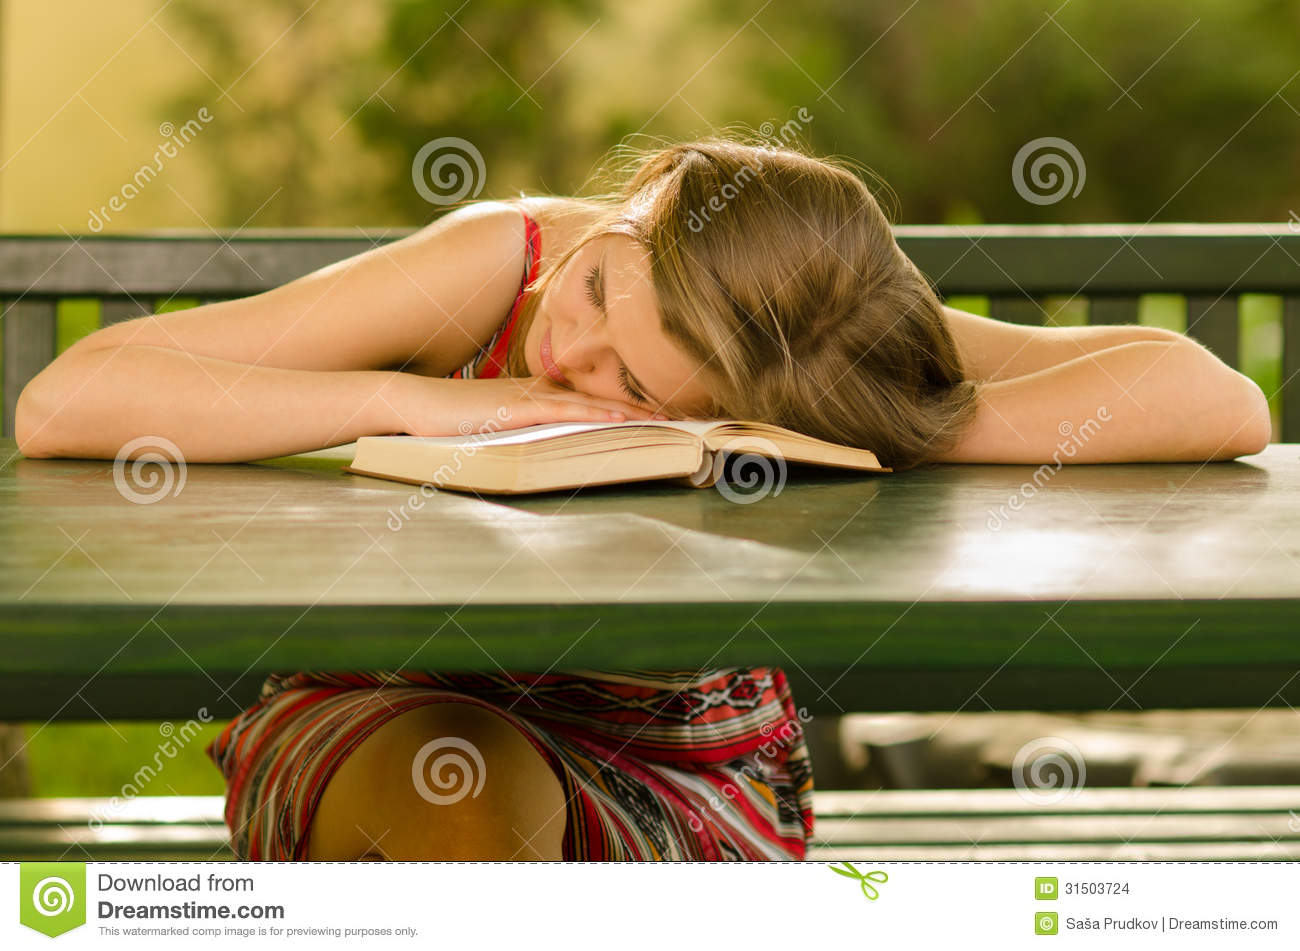 Cute Girl Sleeping On The Table Stock Images - Image 31503724-3970